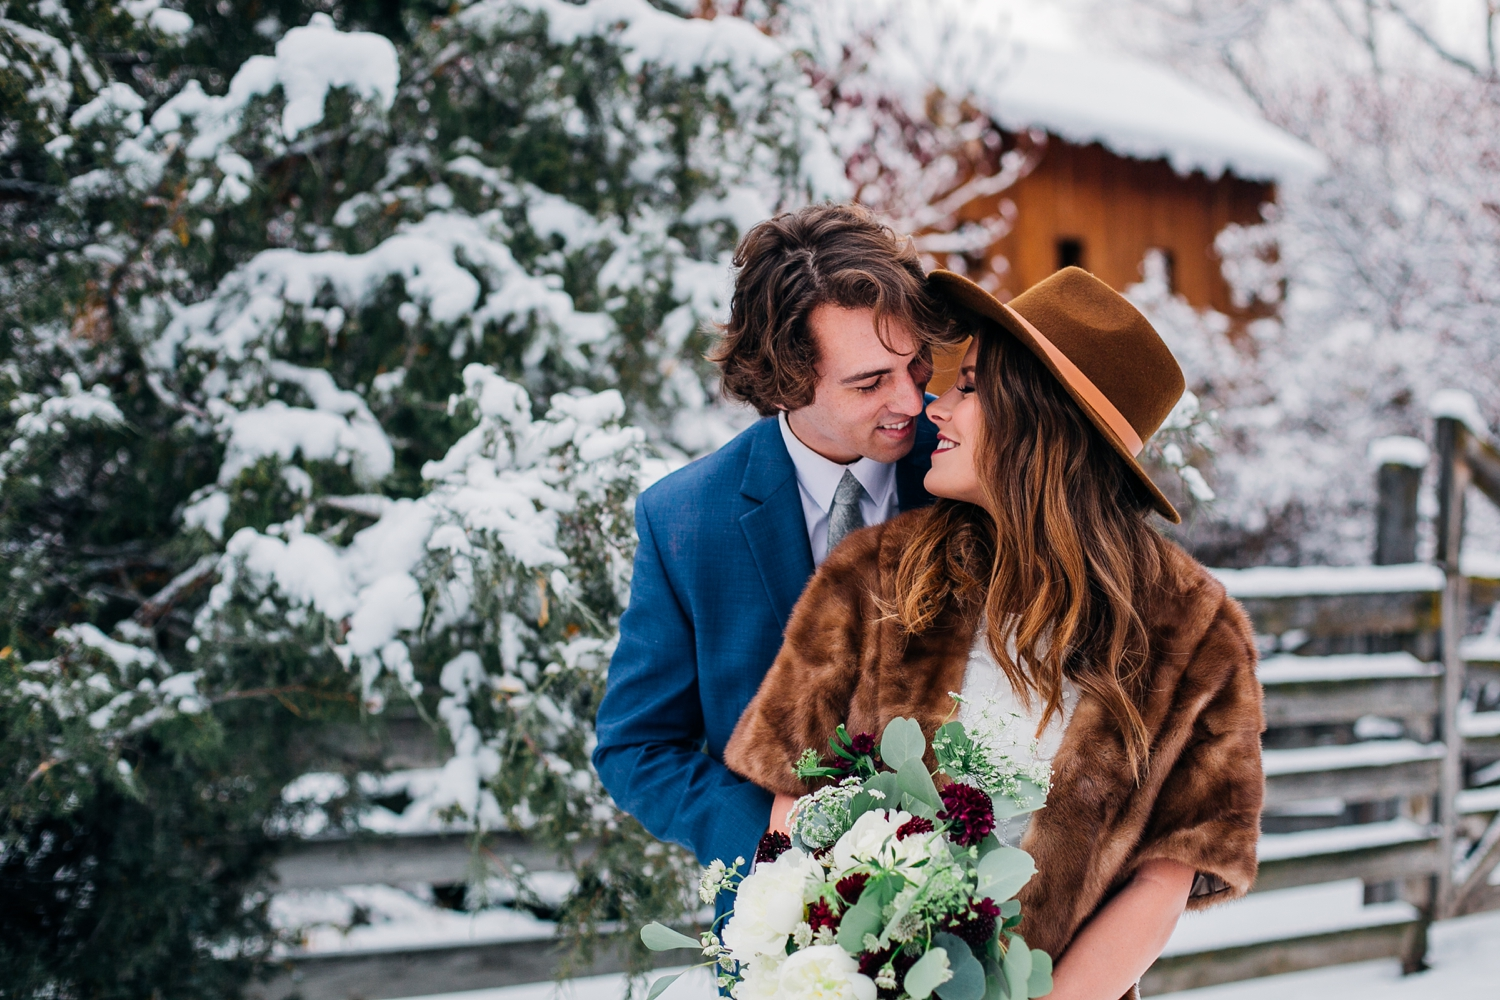 idaho+rexburg+wedding+cheyenne+wyoming+colorado+rocky+mountain+national+park+estes+park+engagement+wedding_1819.jpg